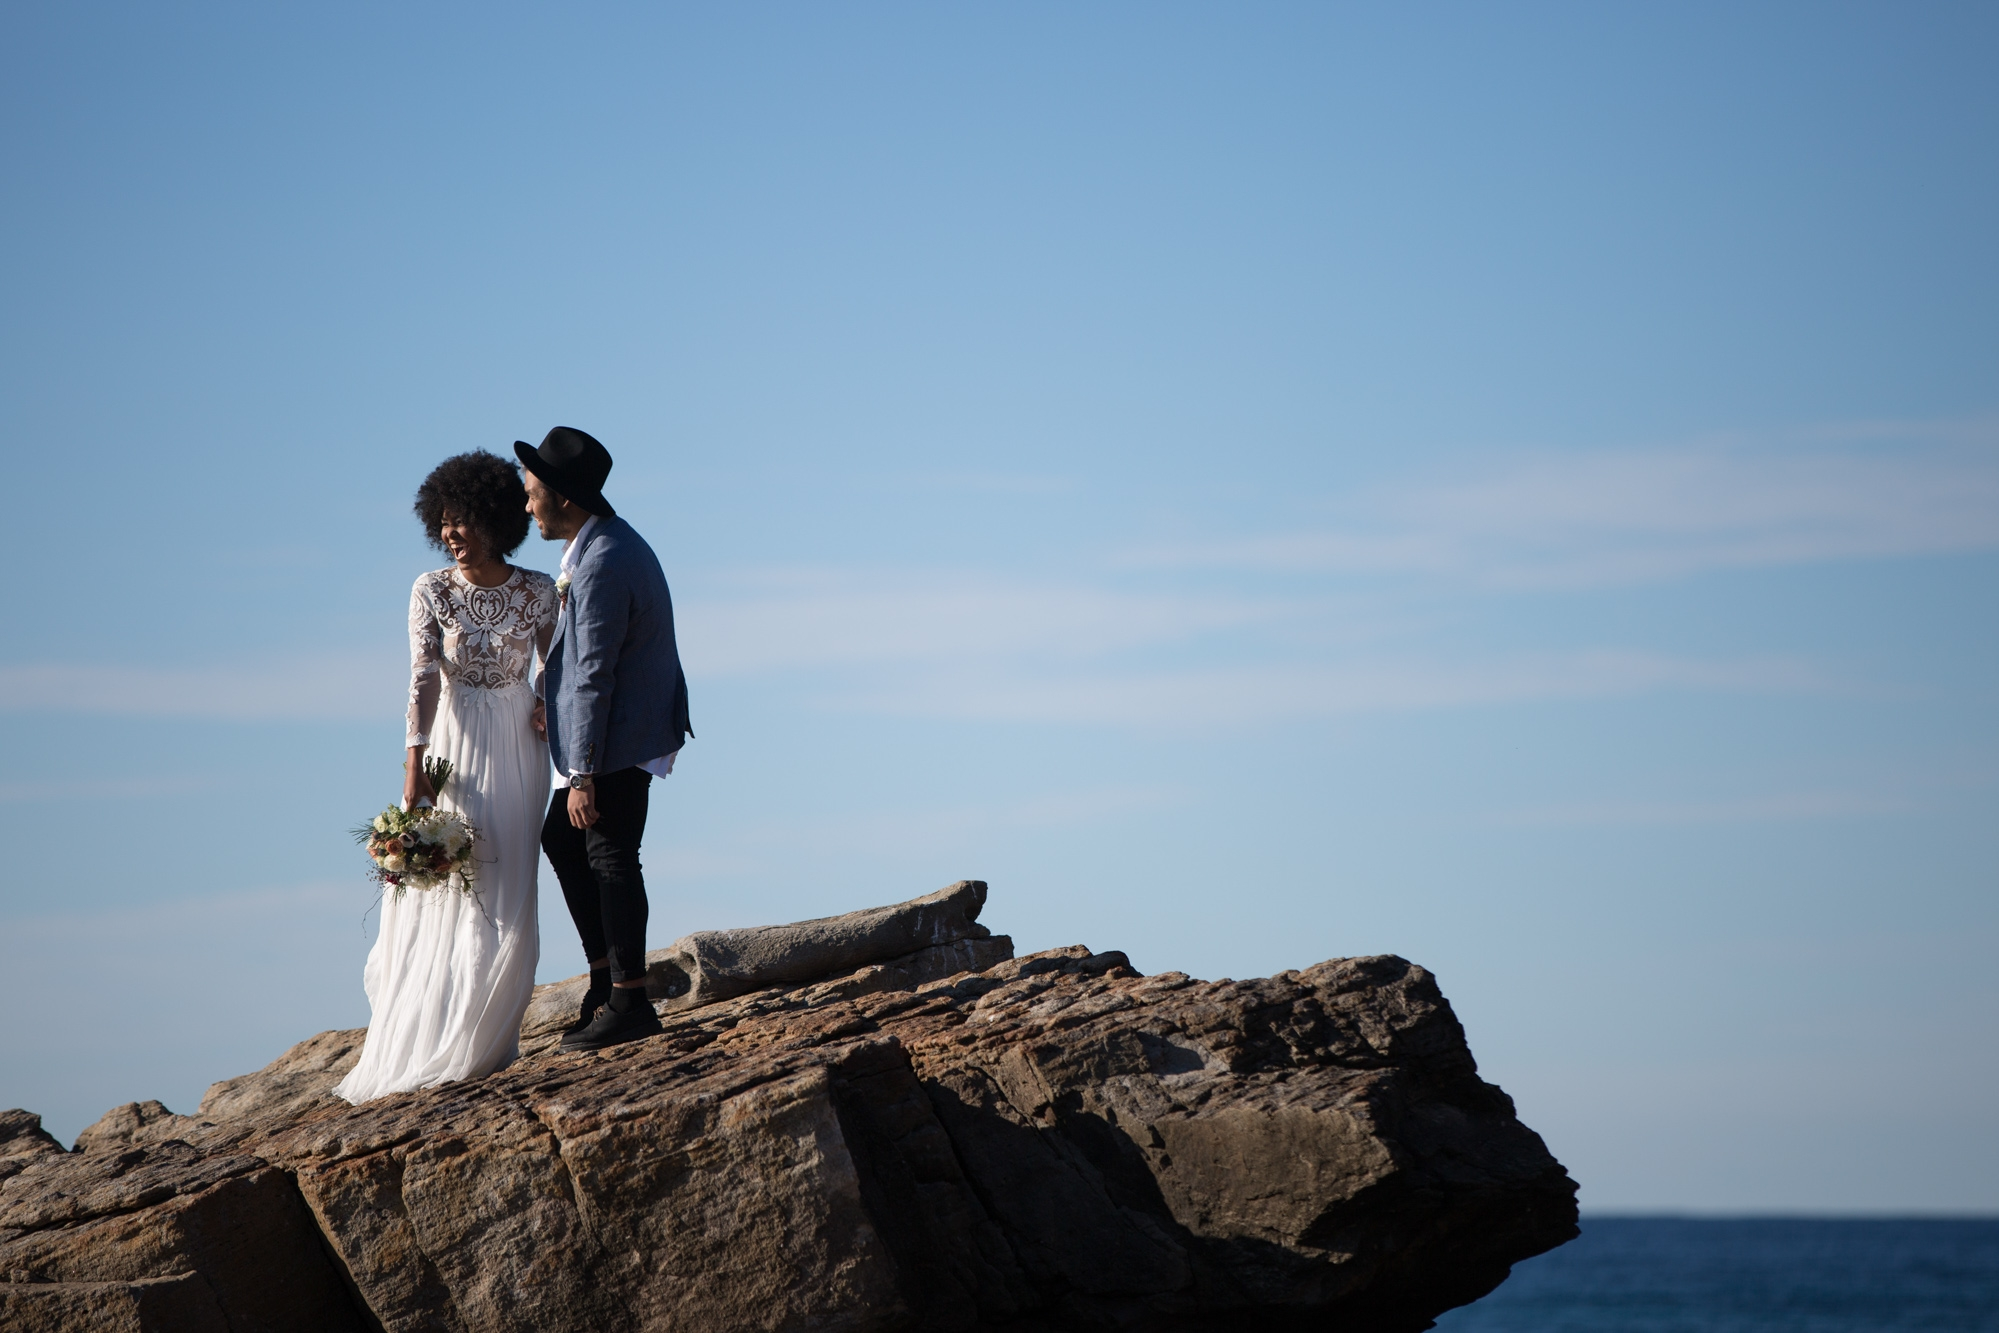 South African bride with afro and groom wearing a hat laughing on the rocks at the beach